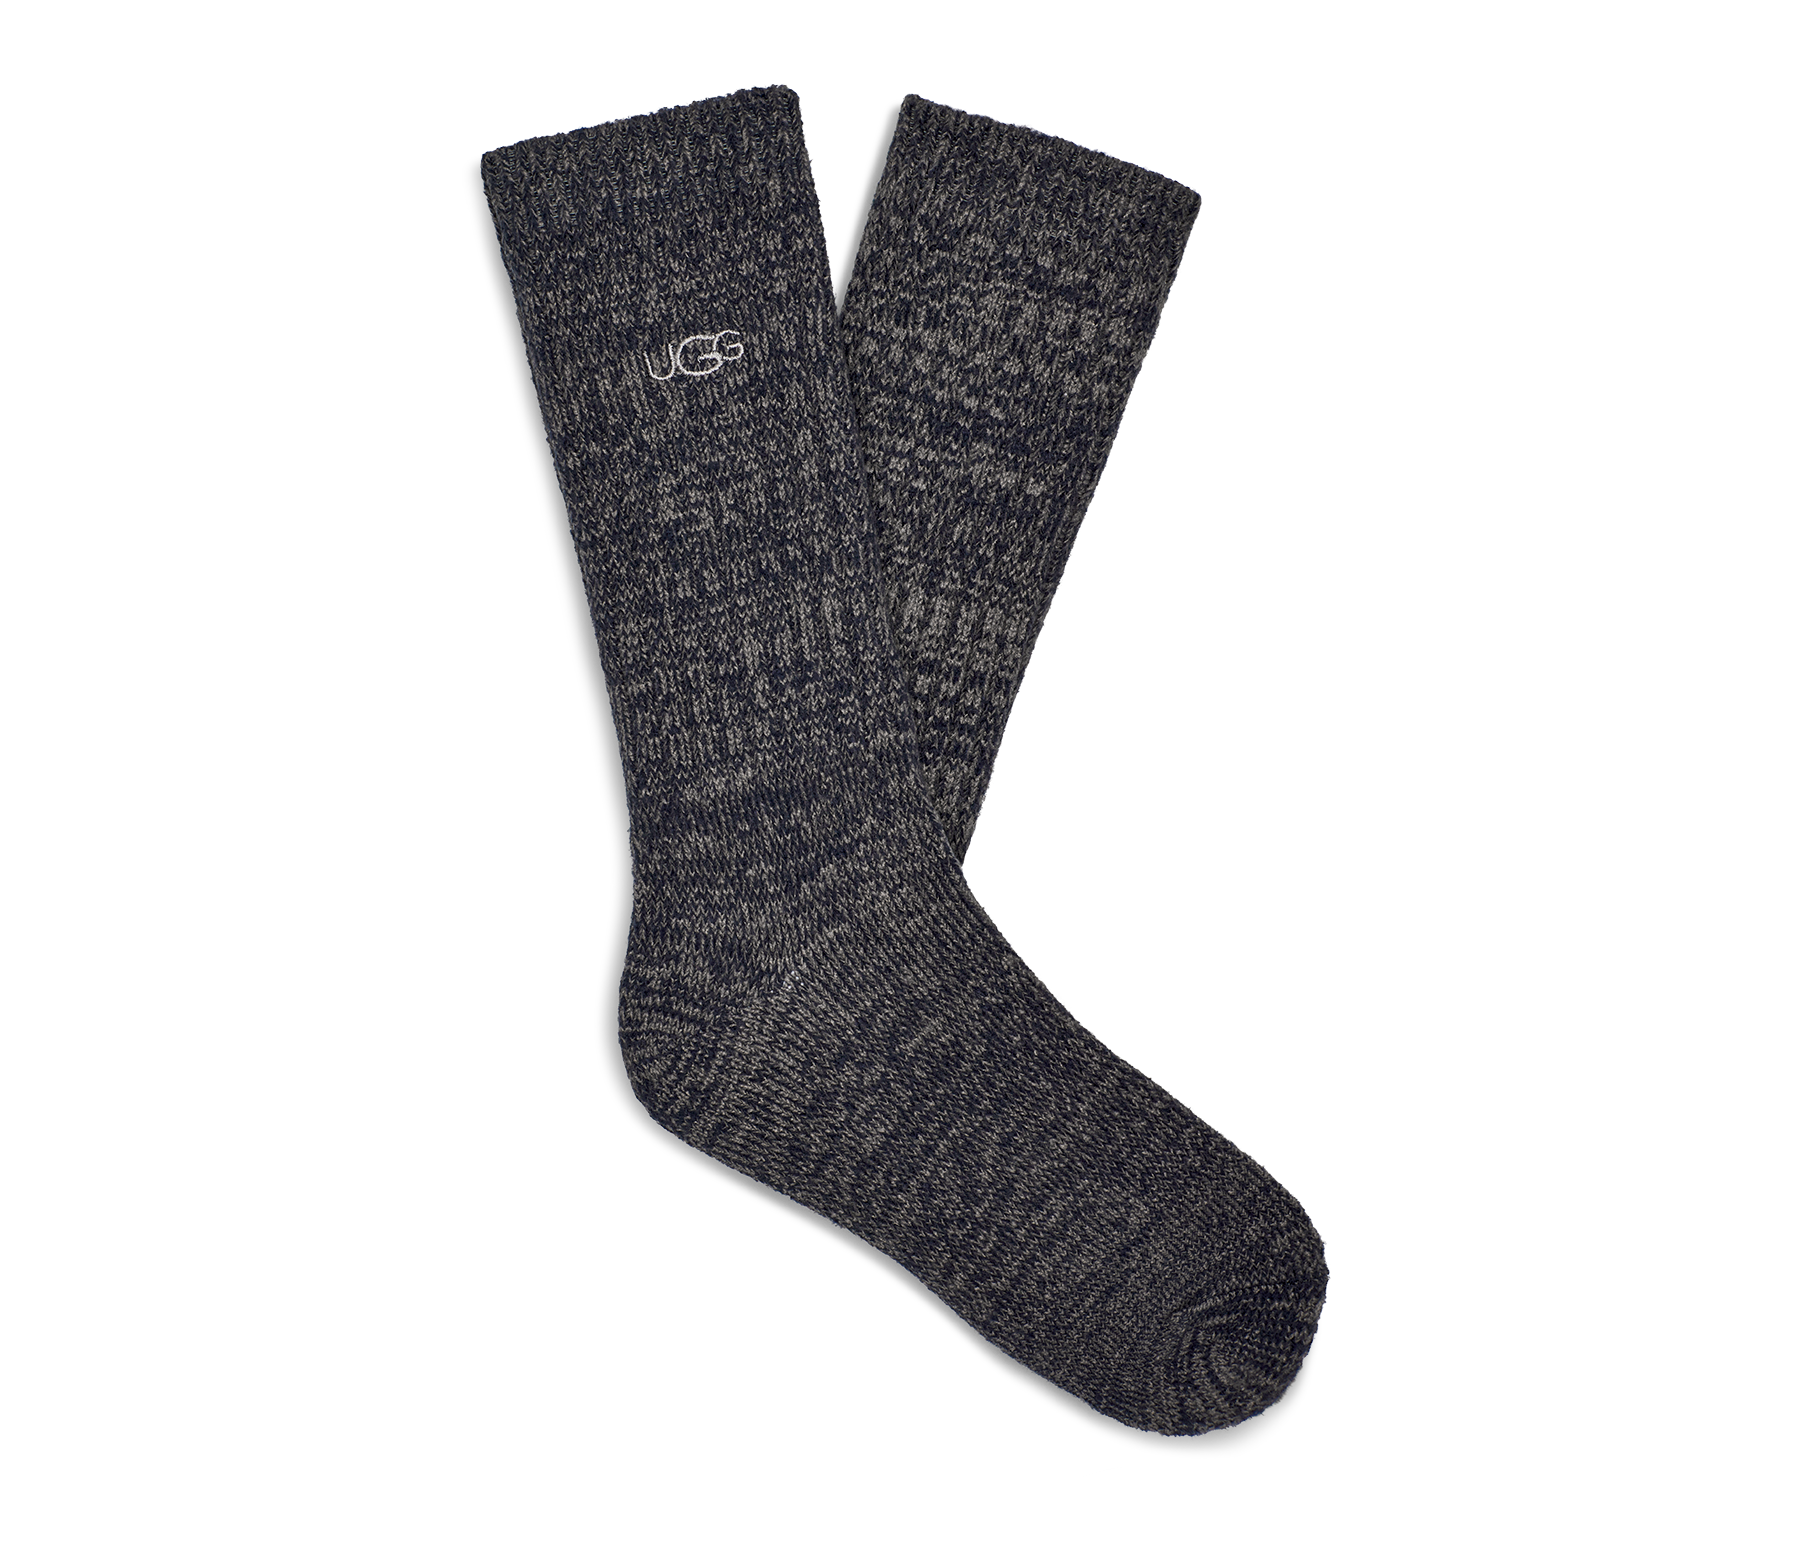 UGG Men's Trey Rib Knit Slouchy Crew Polyester Socks in Blue Made from a soft rib knit, this cozy crew sock is designed for a slouchier fit, offering premium relaxation that's perfect around the house. 99% Polyester/1% Elastane. UGG Men's Trey Rib Knit Slouchy Crew Polyester Socks in Blue